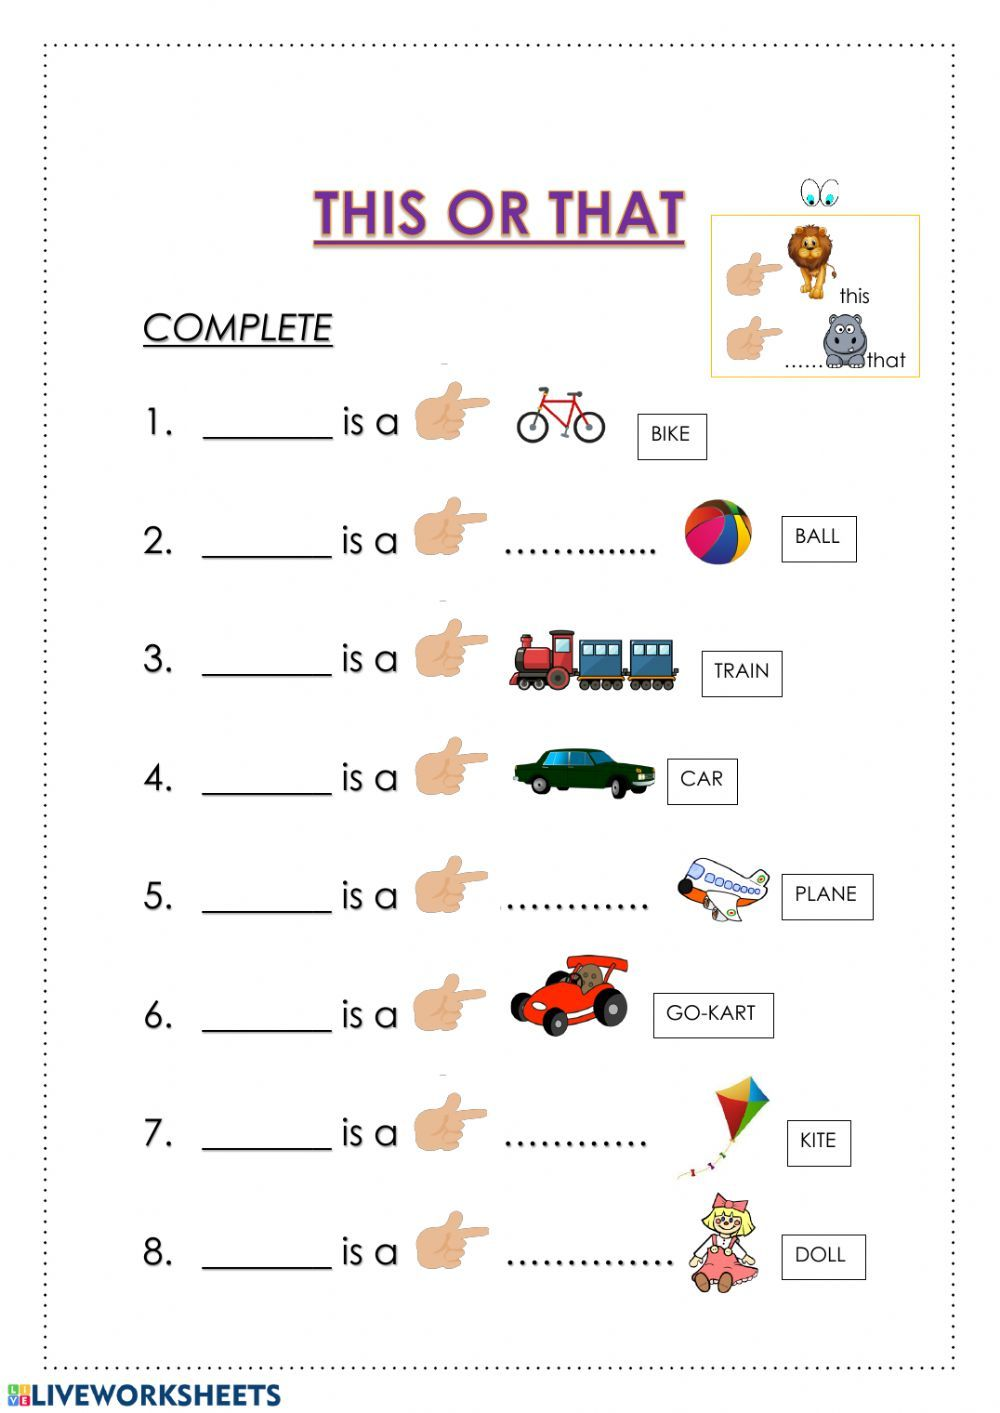 Demonstratives Interactive And Downloadable Worksheet You Ca English Language Learning Activities English Worksheets For Kindergarten English Lessons For Kids [ 1413 x 1000 Pixel ]